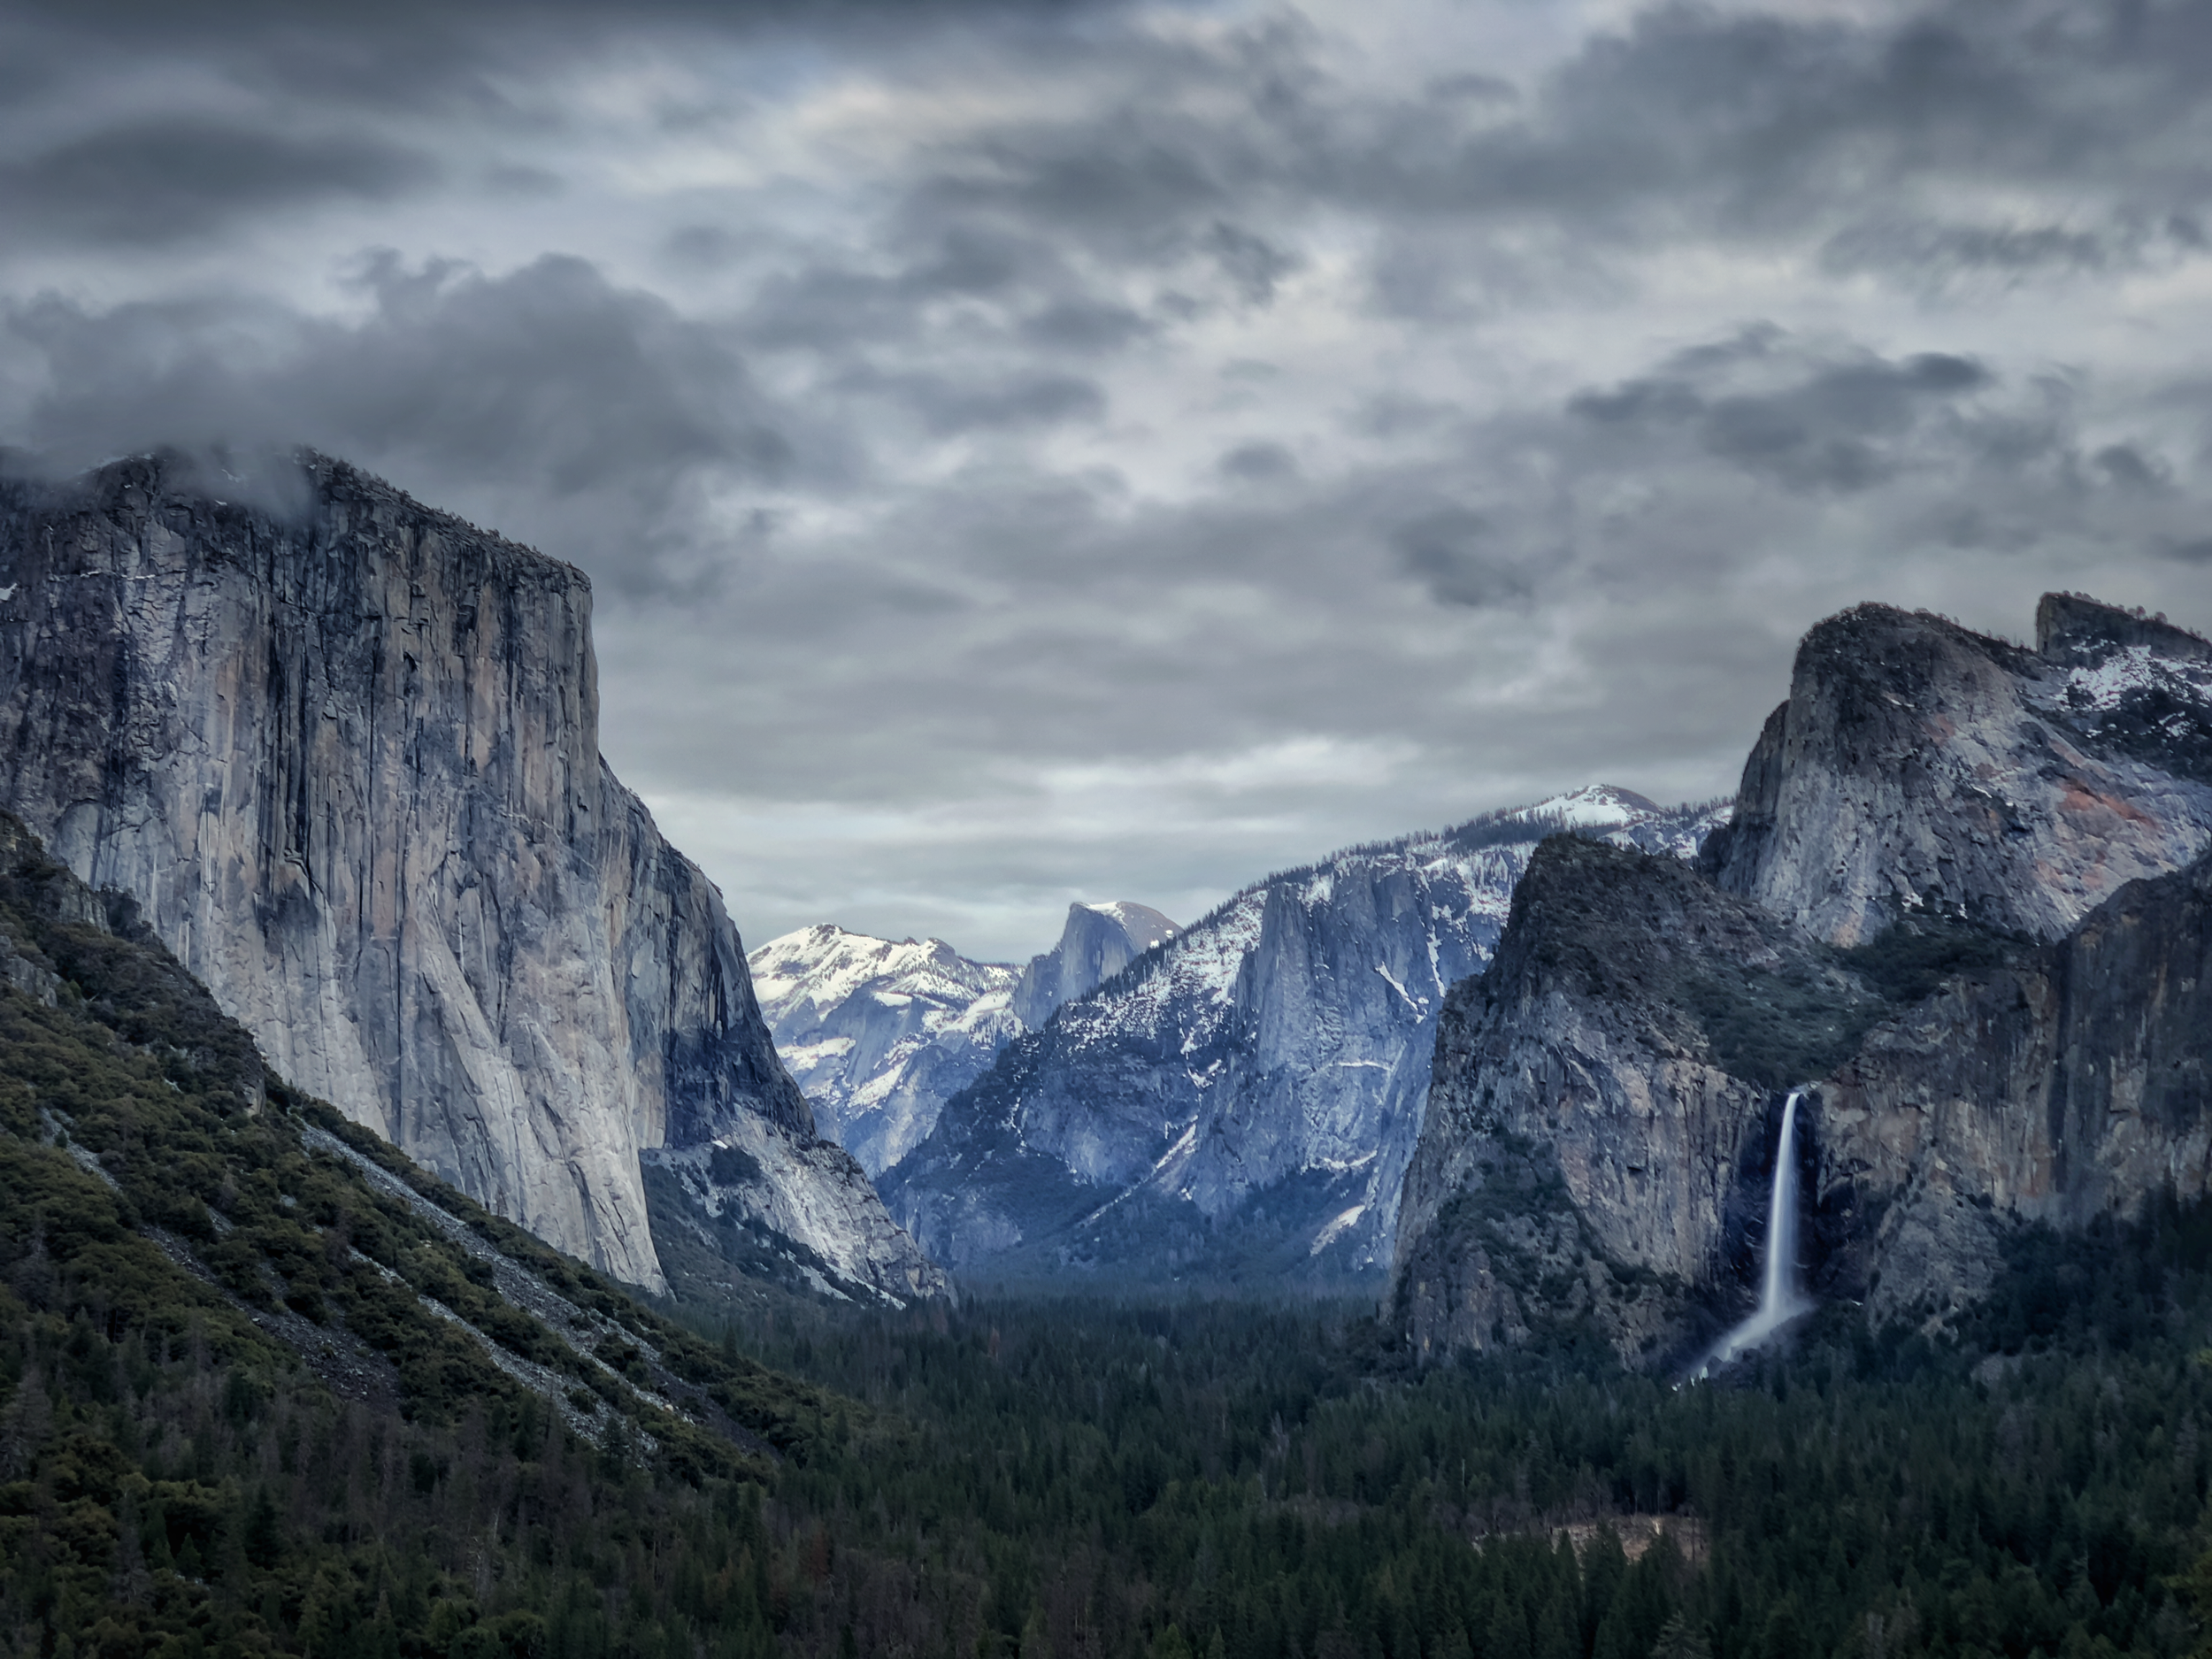 Tunnel view @ Yosemite national park